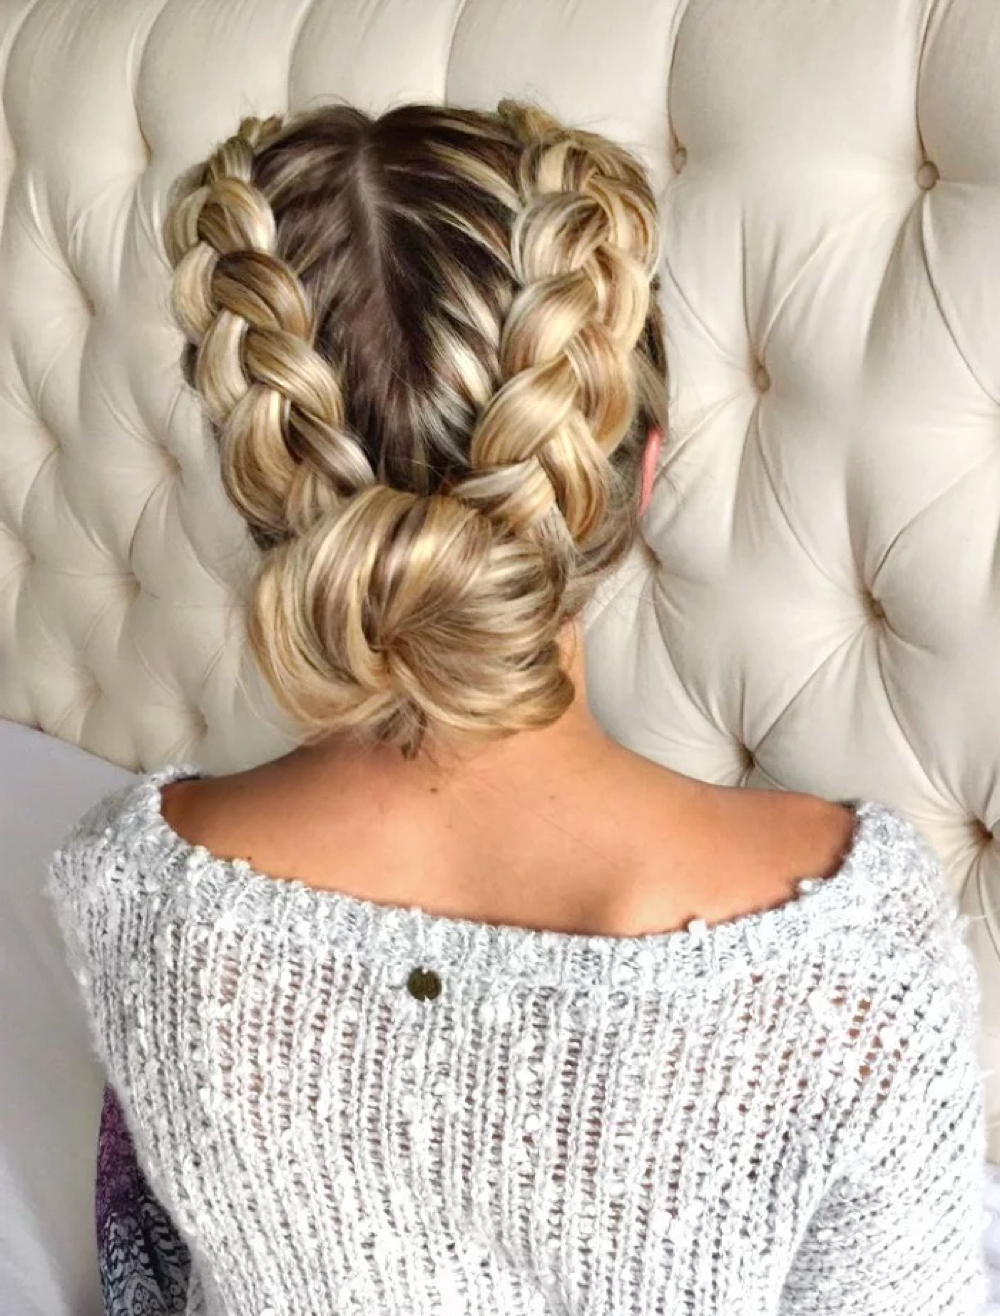 29 Gorgeous Braided Updo Ideas For 2019 Within Current Braided Chignon Hairstyles (View 3 of 20)